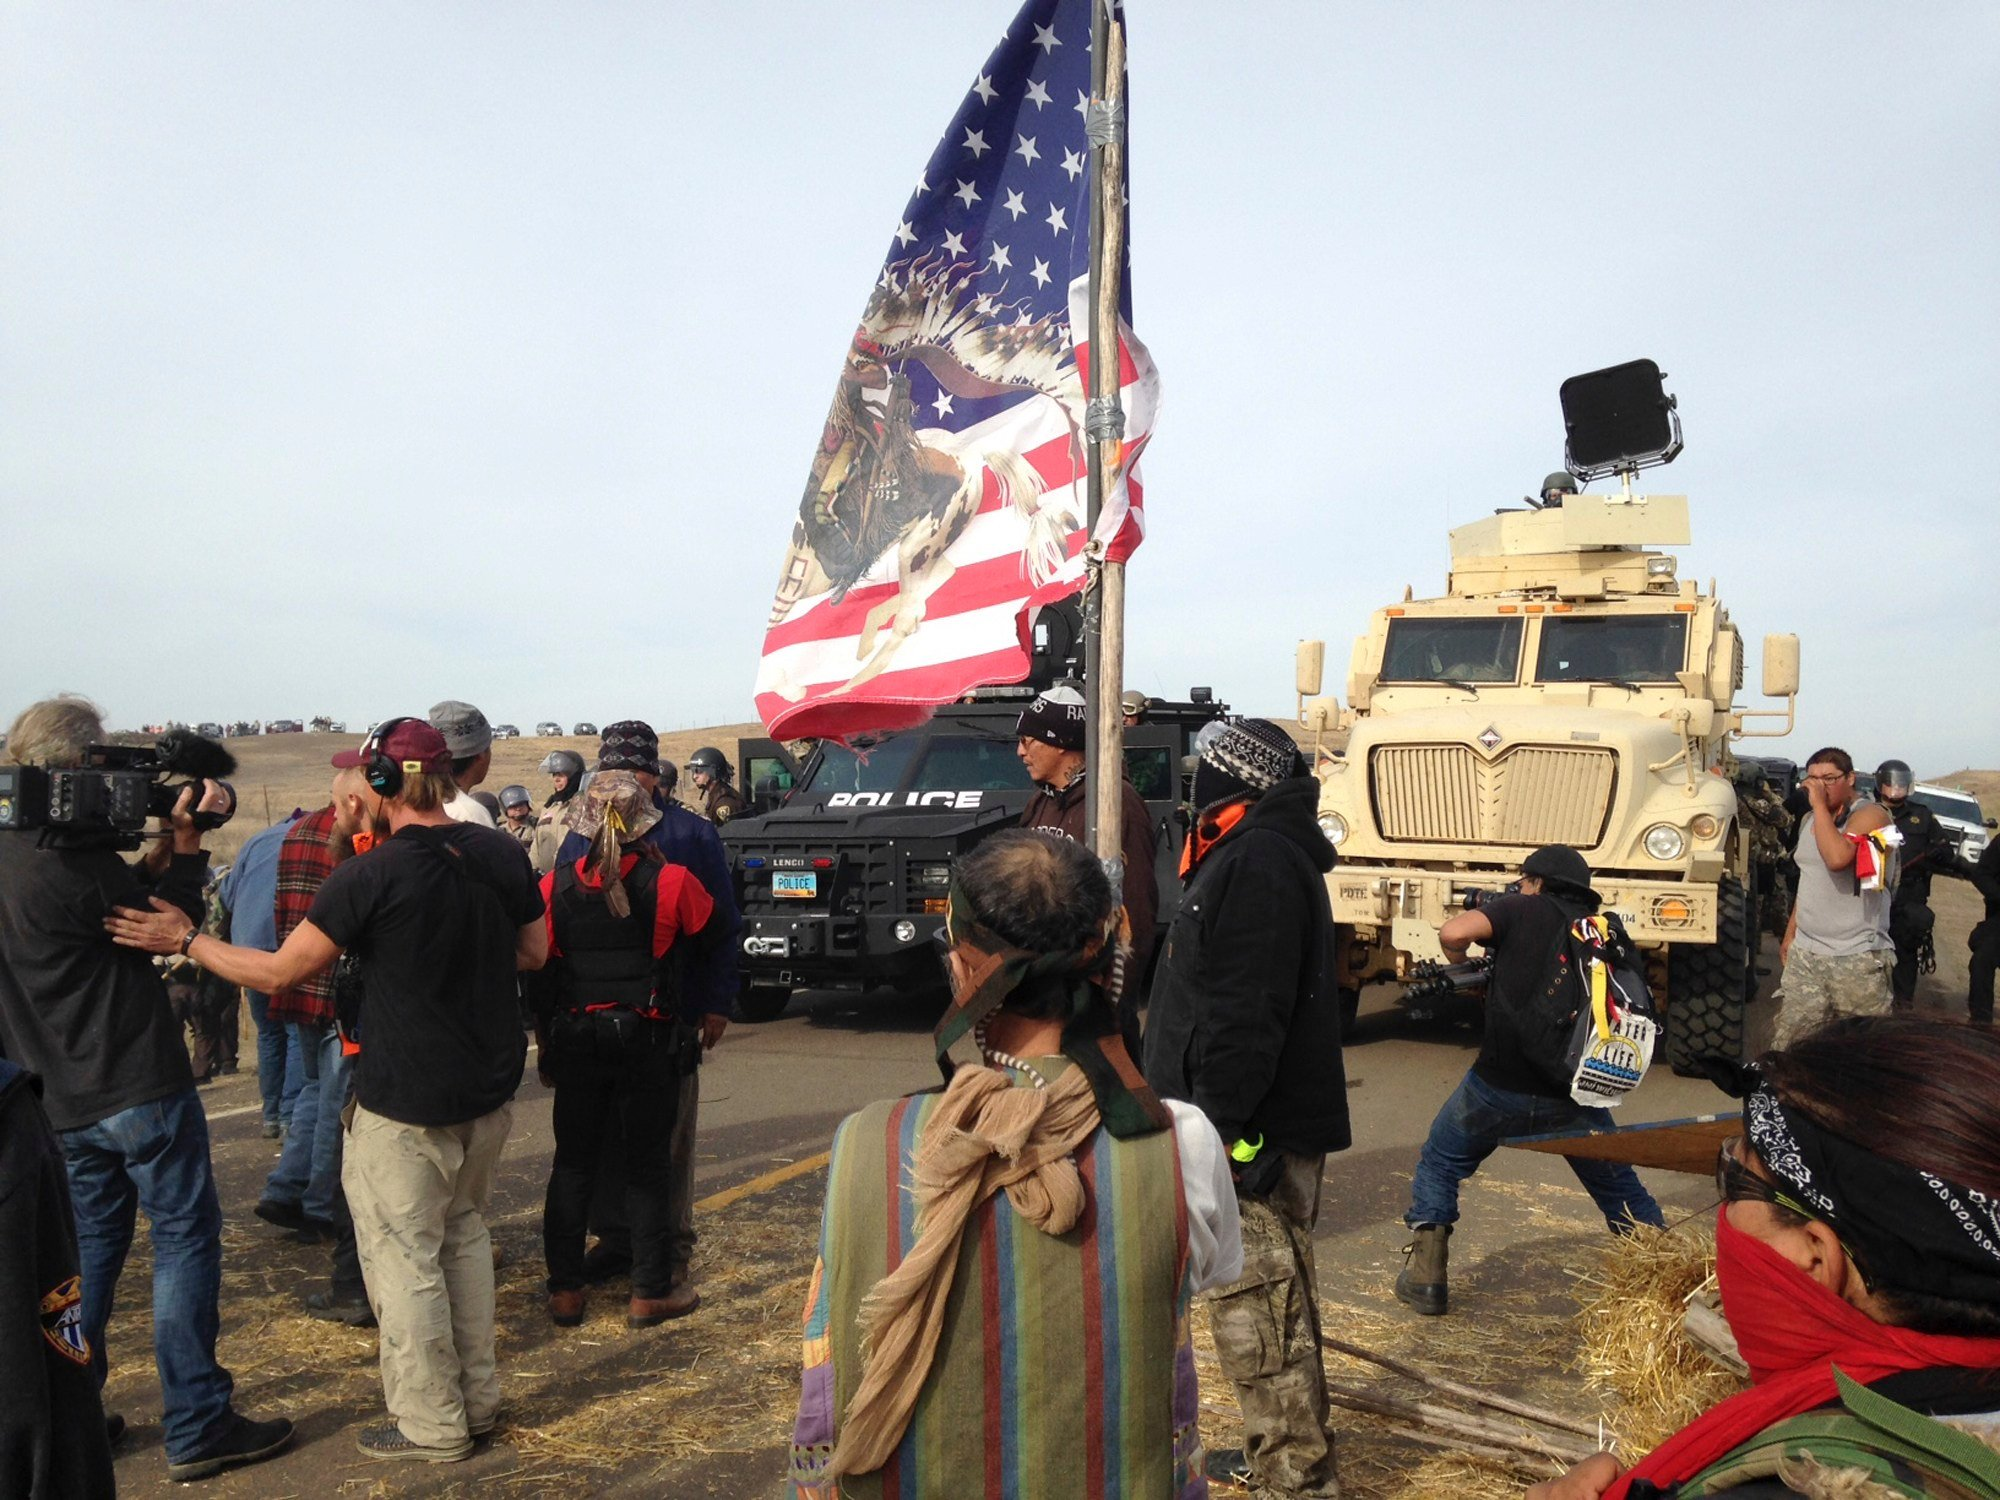 Dakota Access pipeline protesters defy law enforcement officers who are trying to force them from a camp on private land in the path of pipeline construction on Thursday, Oct. 27, 2016, near Cannon Ball, N.D. The months-long dispute over the four-state, $